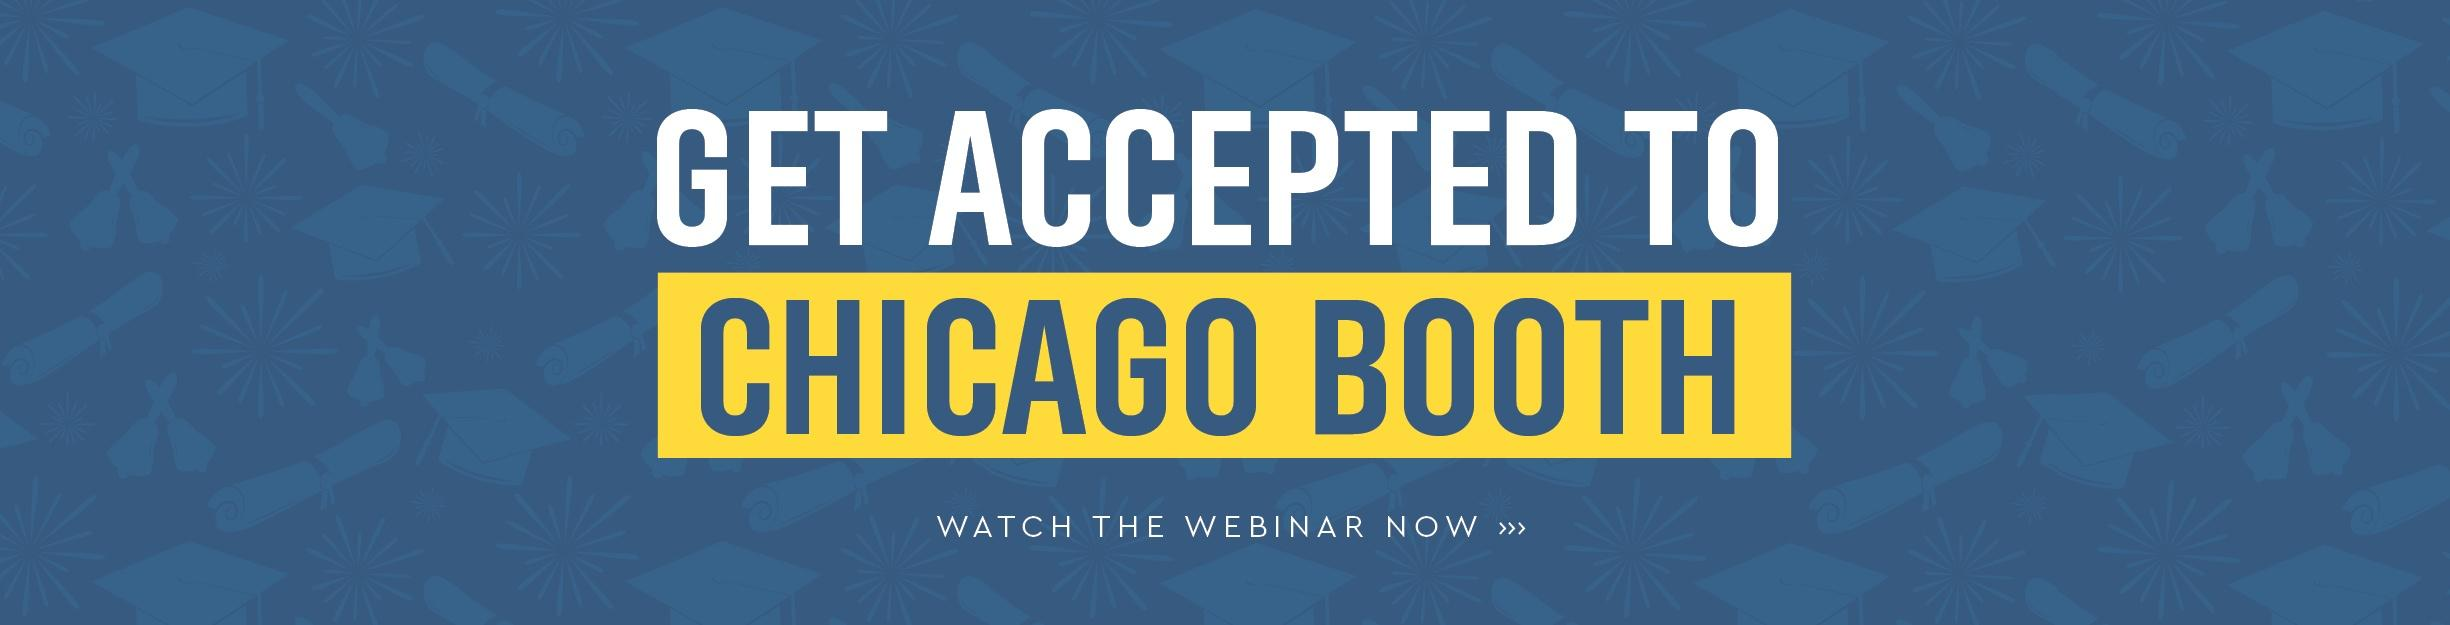 chicago booth executive mba essays The university of chicago's booth school of business has released its essay  question for 2016-2017 mba applicants, as well as its mba application deadlines.